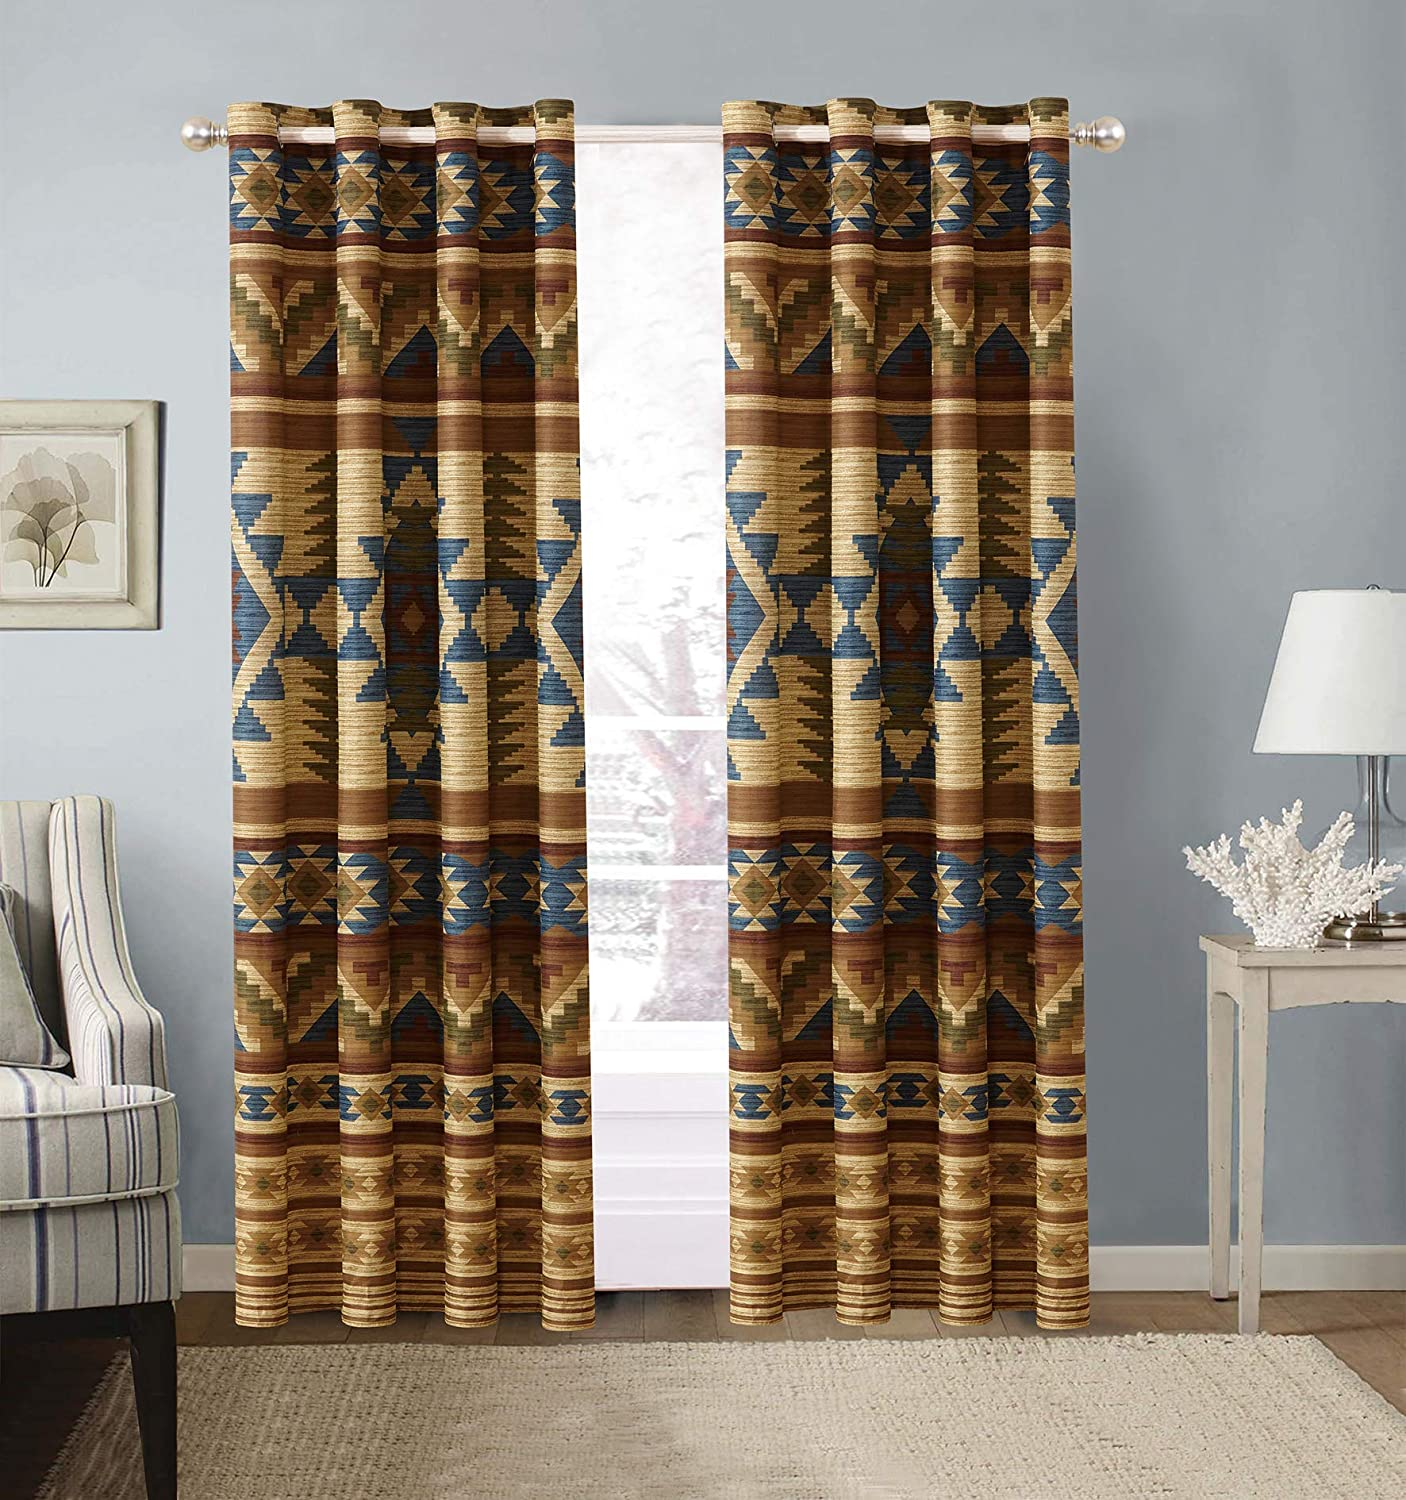 "Rustic Western Southwestern Native American 2 Piece Window Curtains Set with Grommets in Beige Taupe Brown Blue and Green Color Scheme (2 Panels - 54""x84"" Each) Austin Taupe 2pc Curtains"